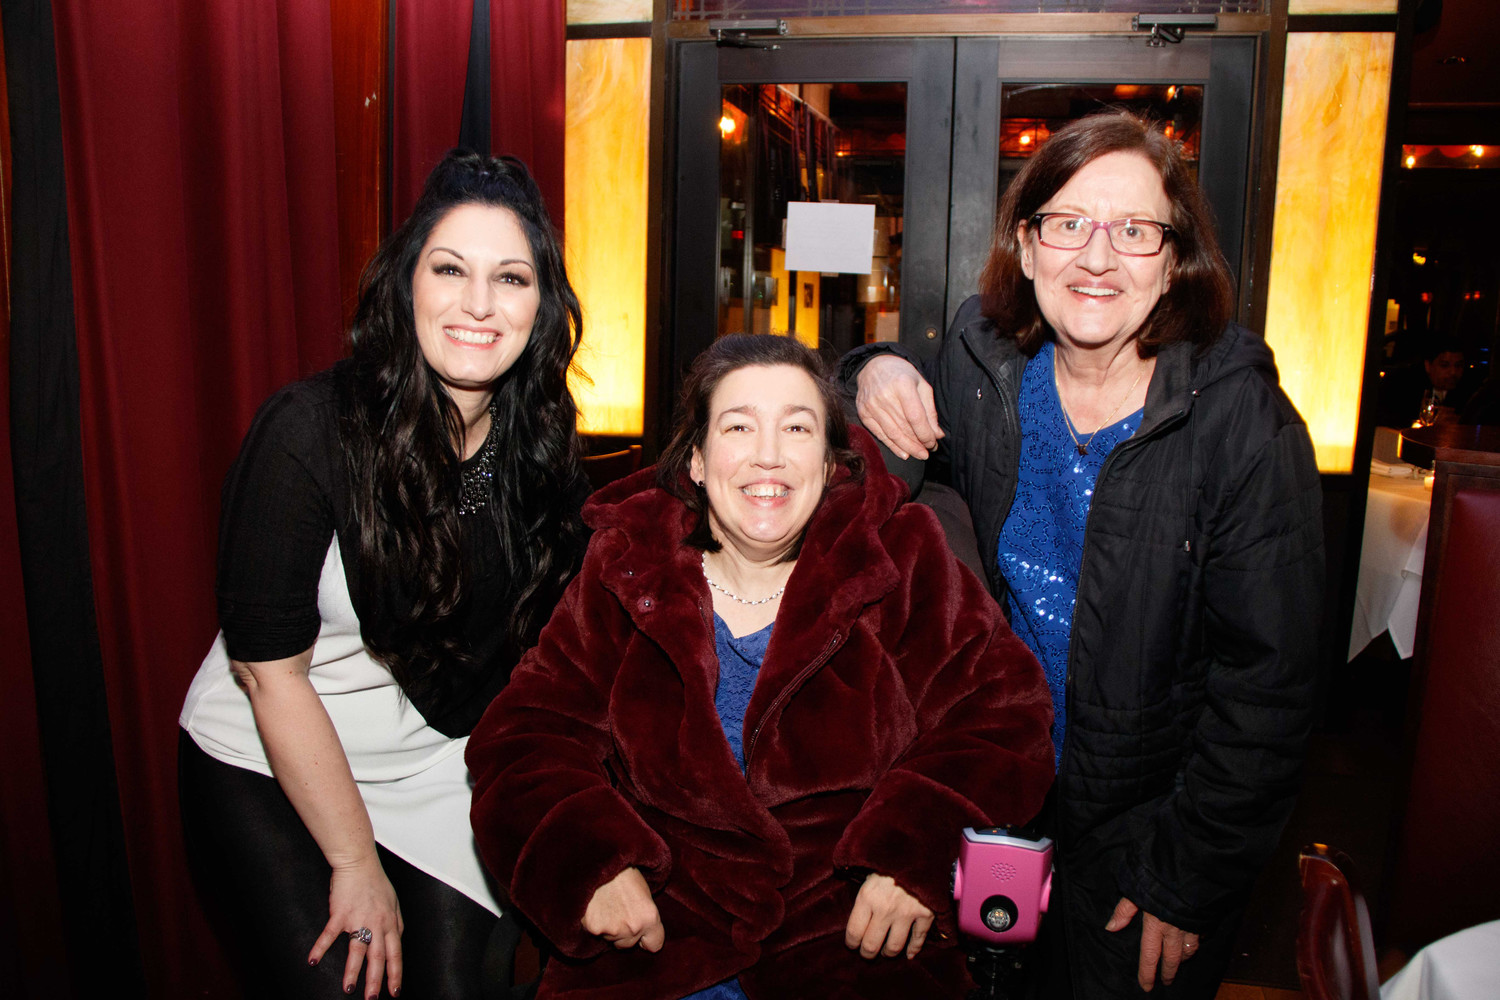 Niki Sorrentino fundraised to help those with Cerebral Palsy, such as her friend Francesca Dindo. They are pictured here with Dindo's mother, Kathe.